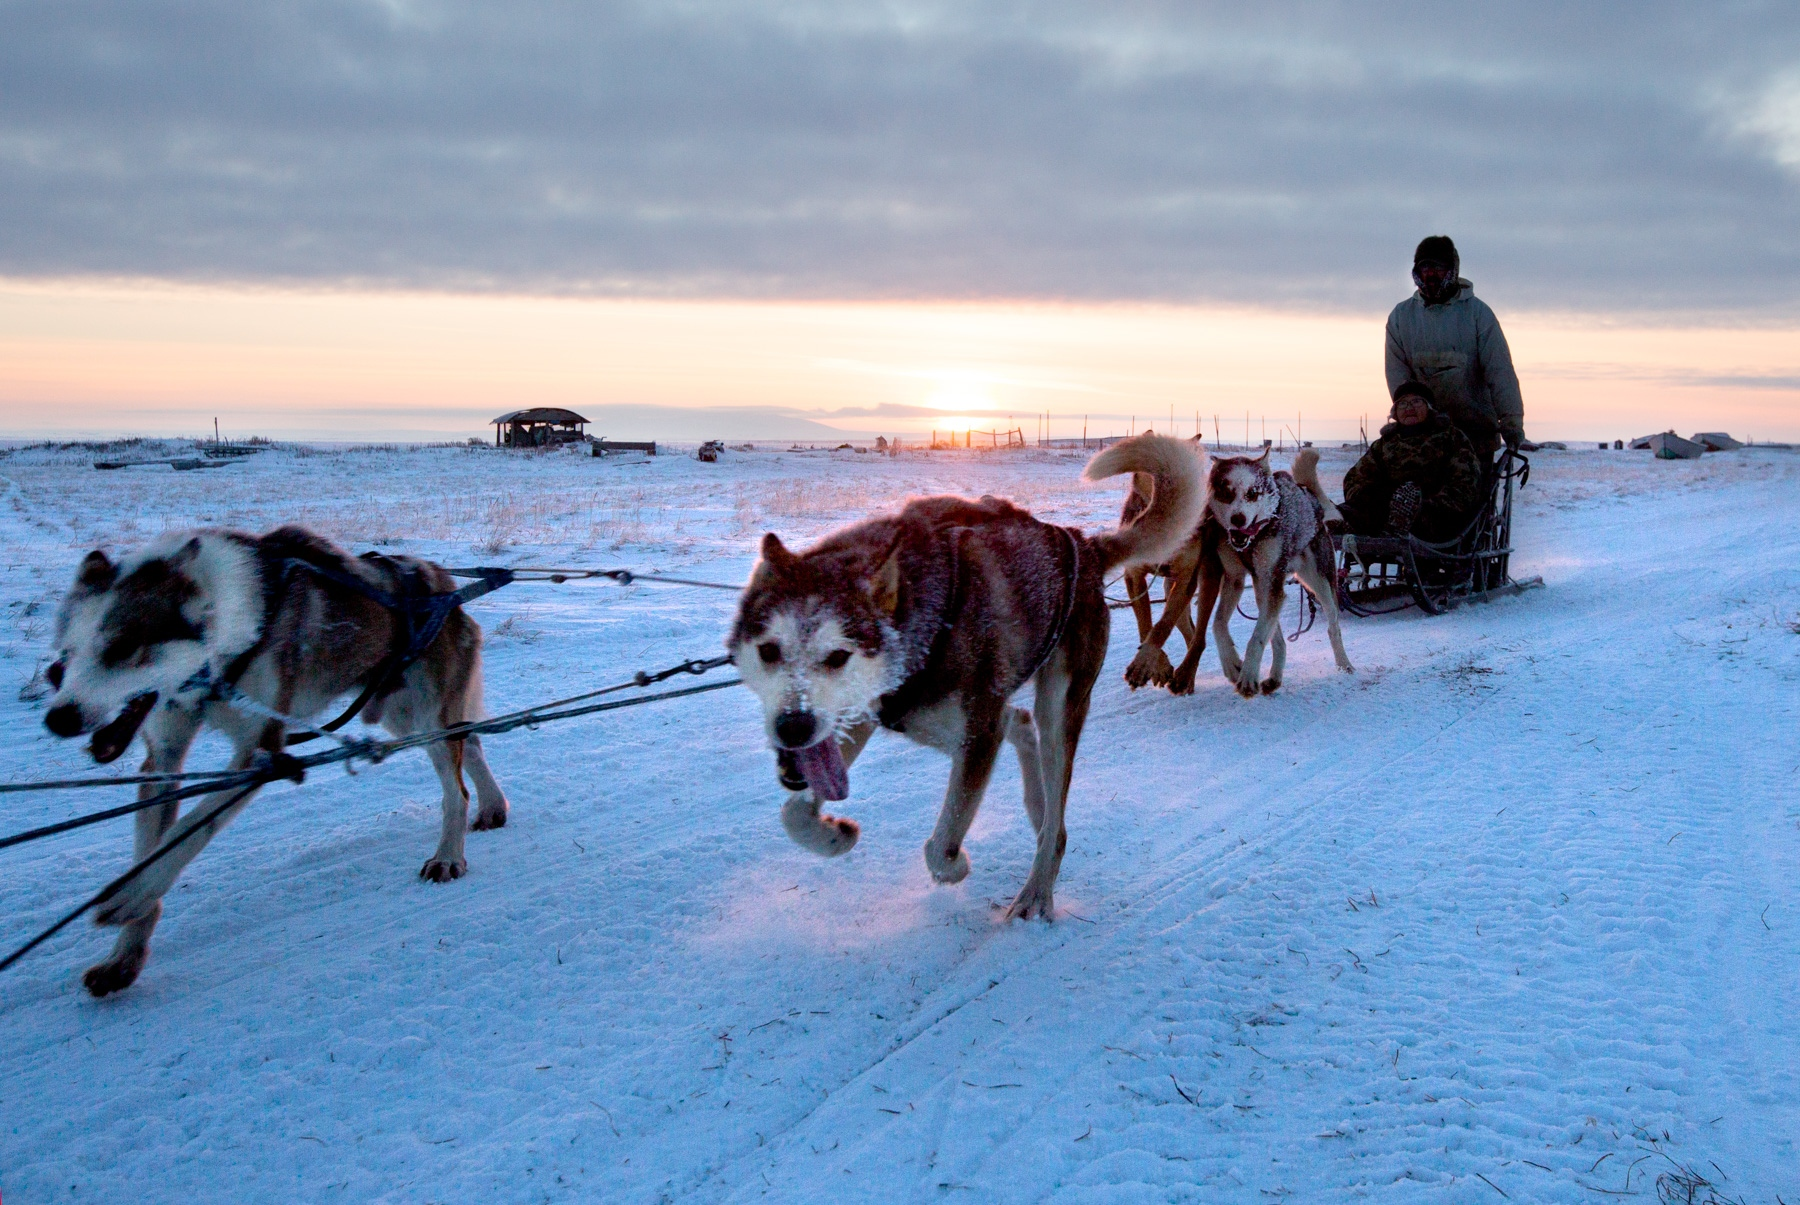 A resident of Shishmaref returns home from a dog run where the dogs are trained both the discipline and endurance necessary for mushing.